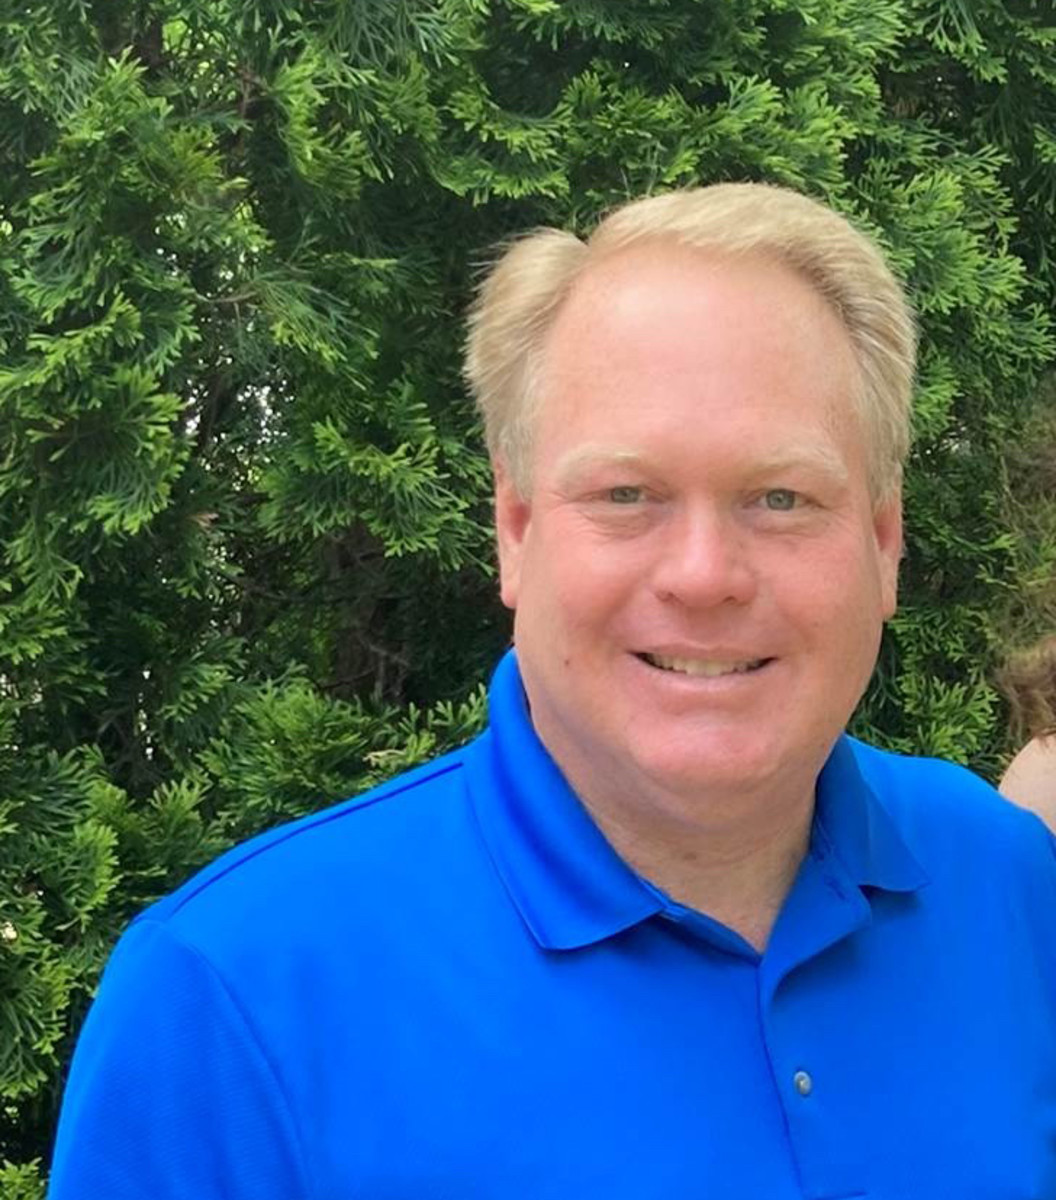 Terry Posey is Suzuki Marine's field service & tech line manager/service operations.